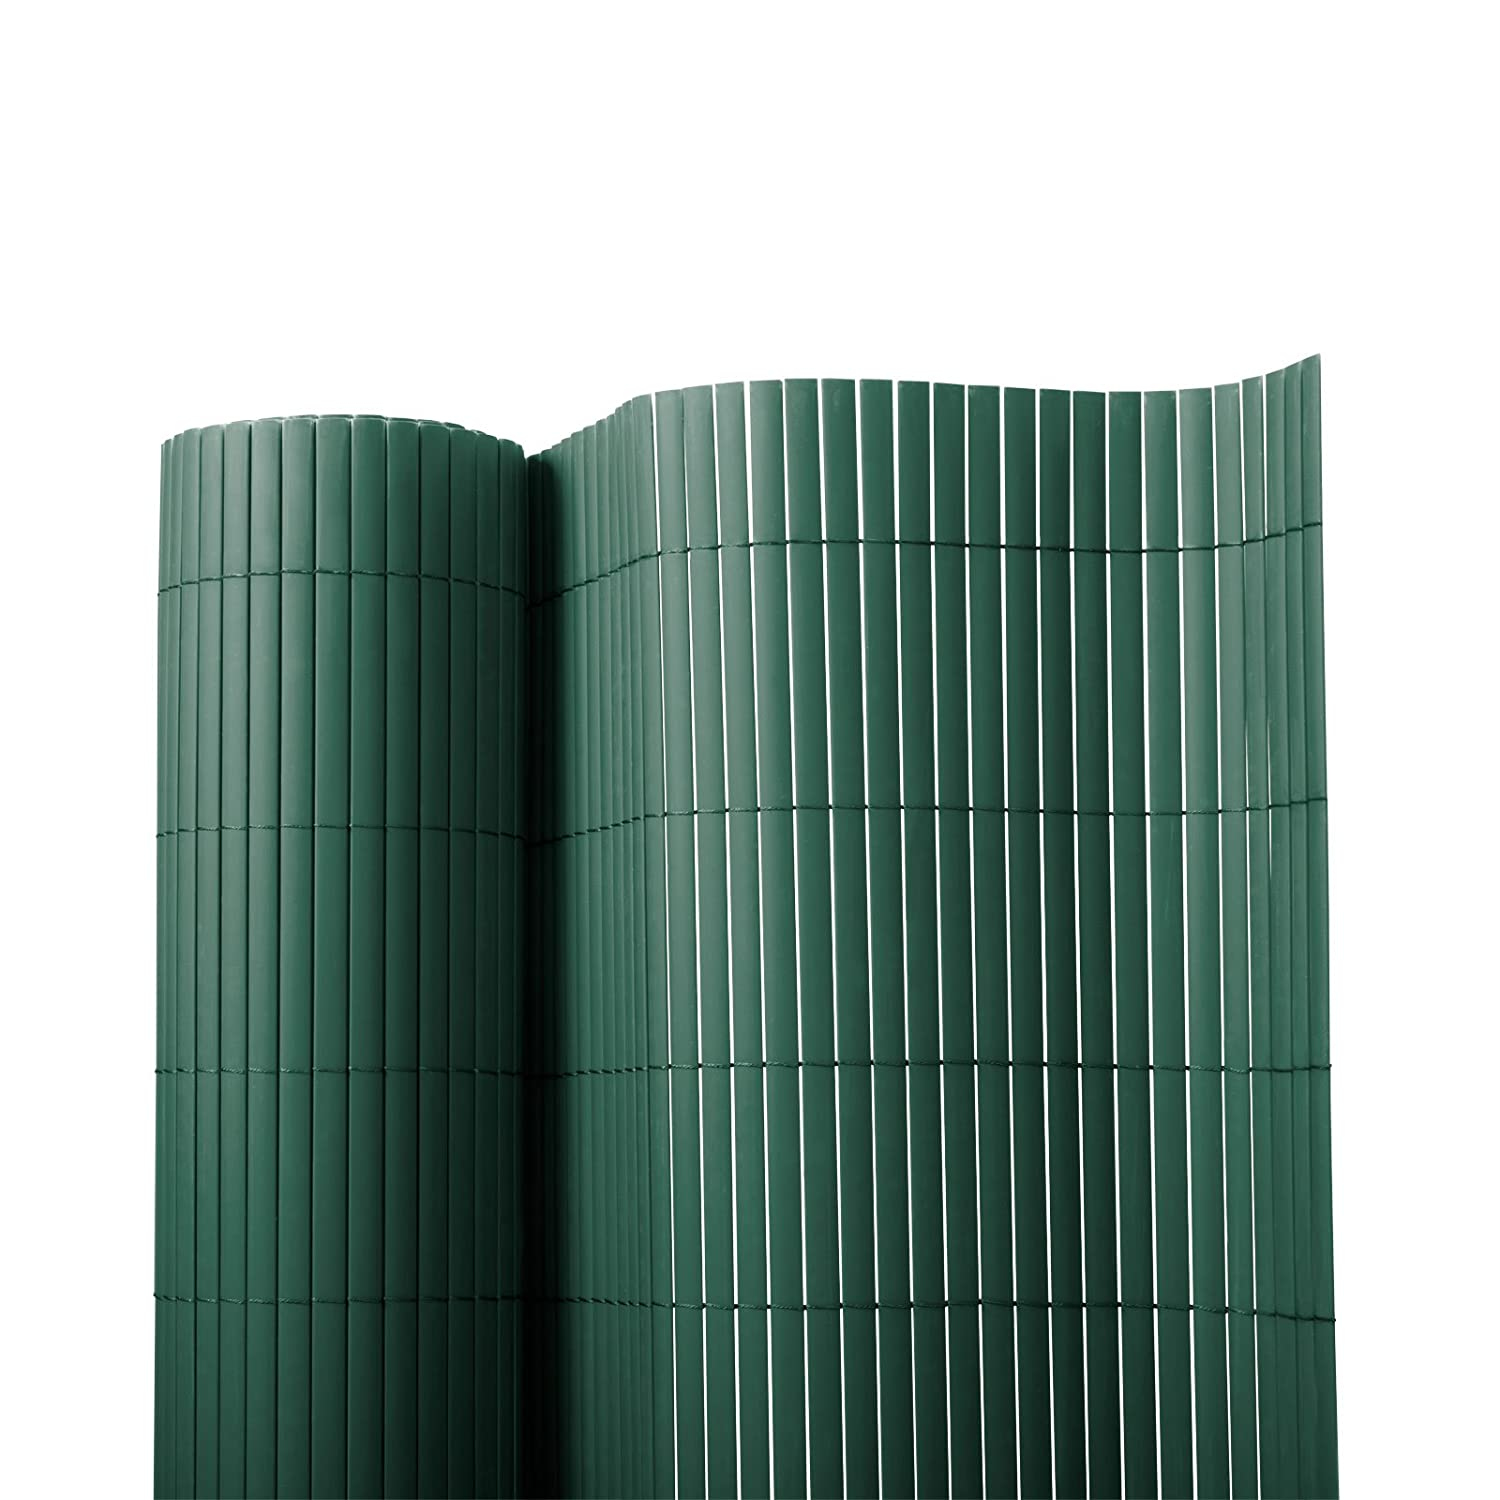 casa pura PVC Garden Screen Fence, Green - 150 x 300 cm | 7 Sizes Available - Protective Screening Fence